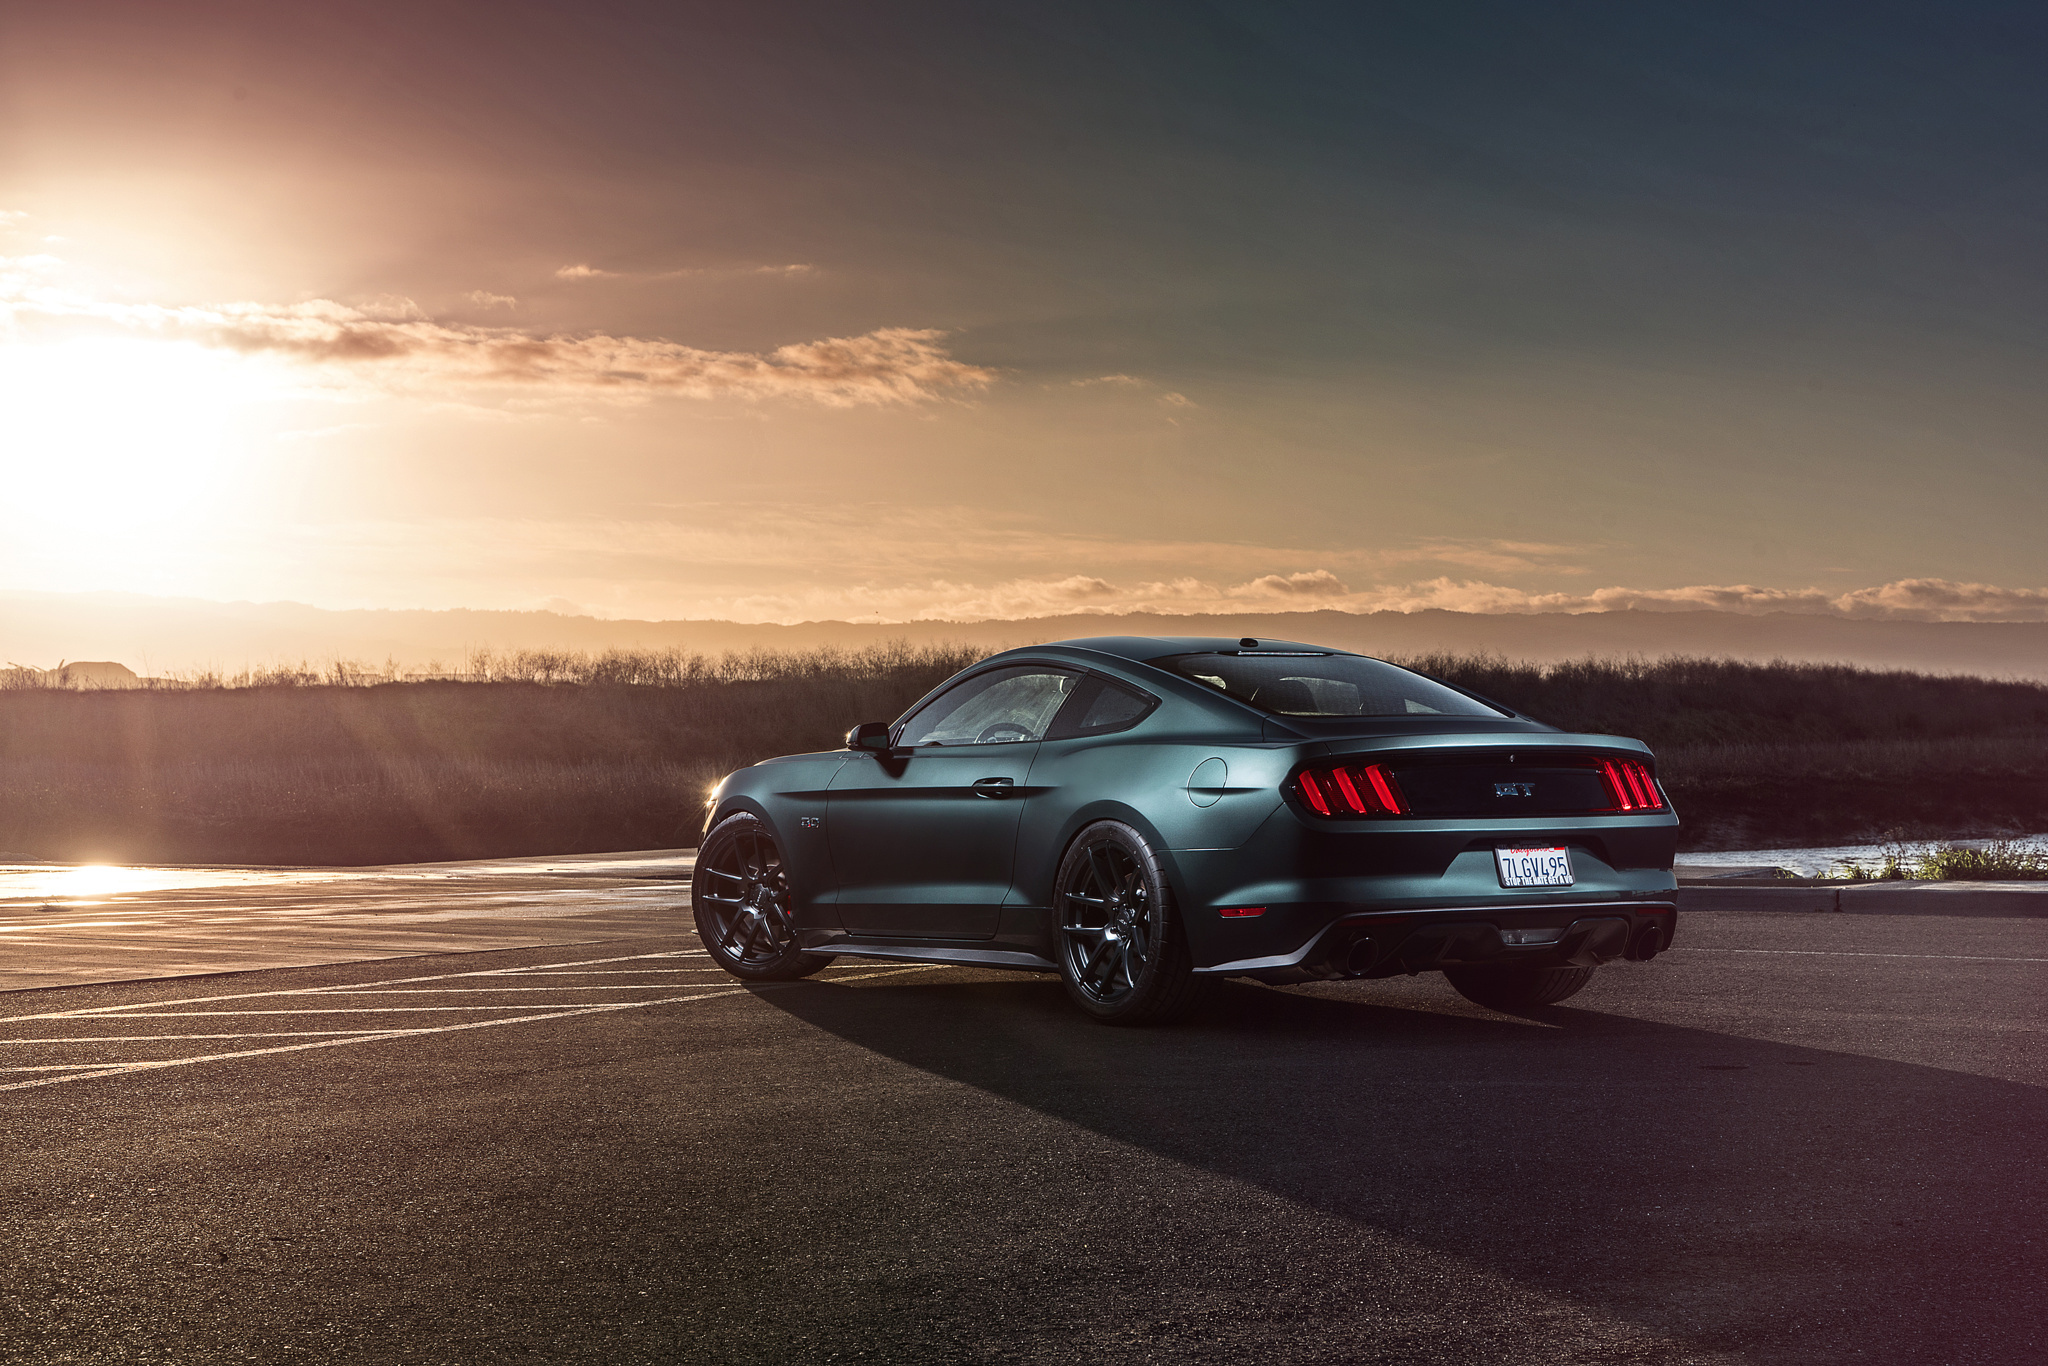 2048x1366 - Ford Mustang GT500 Wallpapers 5